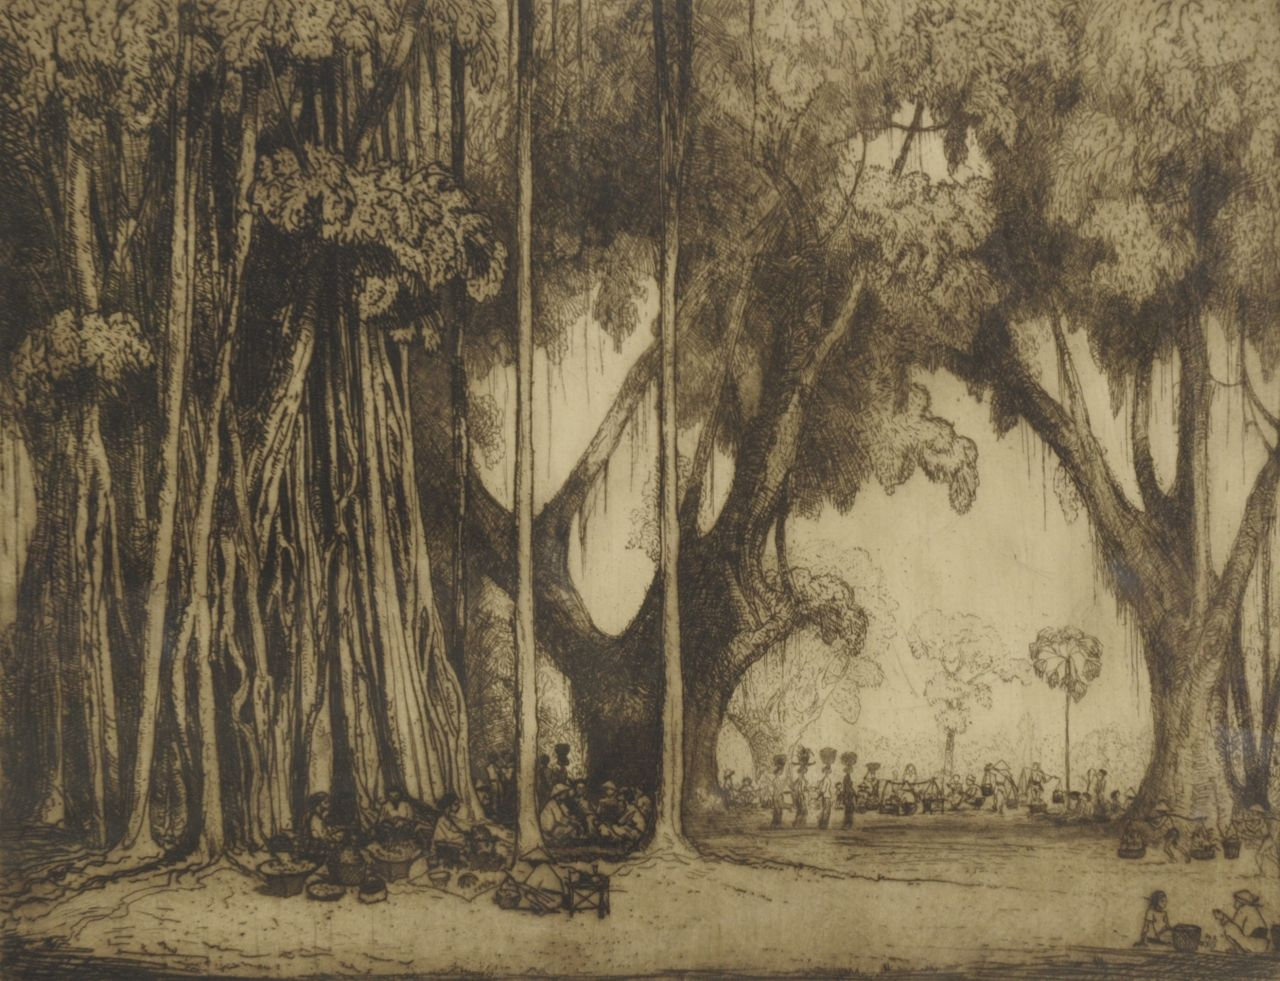 Poortenaar J.C.  | 'Jan' Christiaan Poortenaar, Indonesian landscape with a market, etching on paper 53.1 x 66.1 cm, signed l.r. (in pencil)